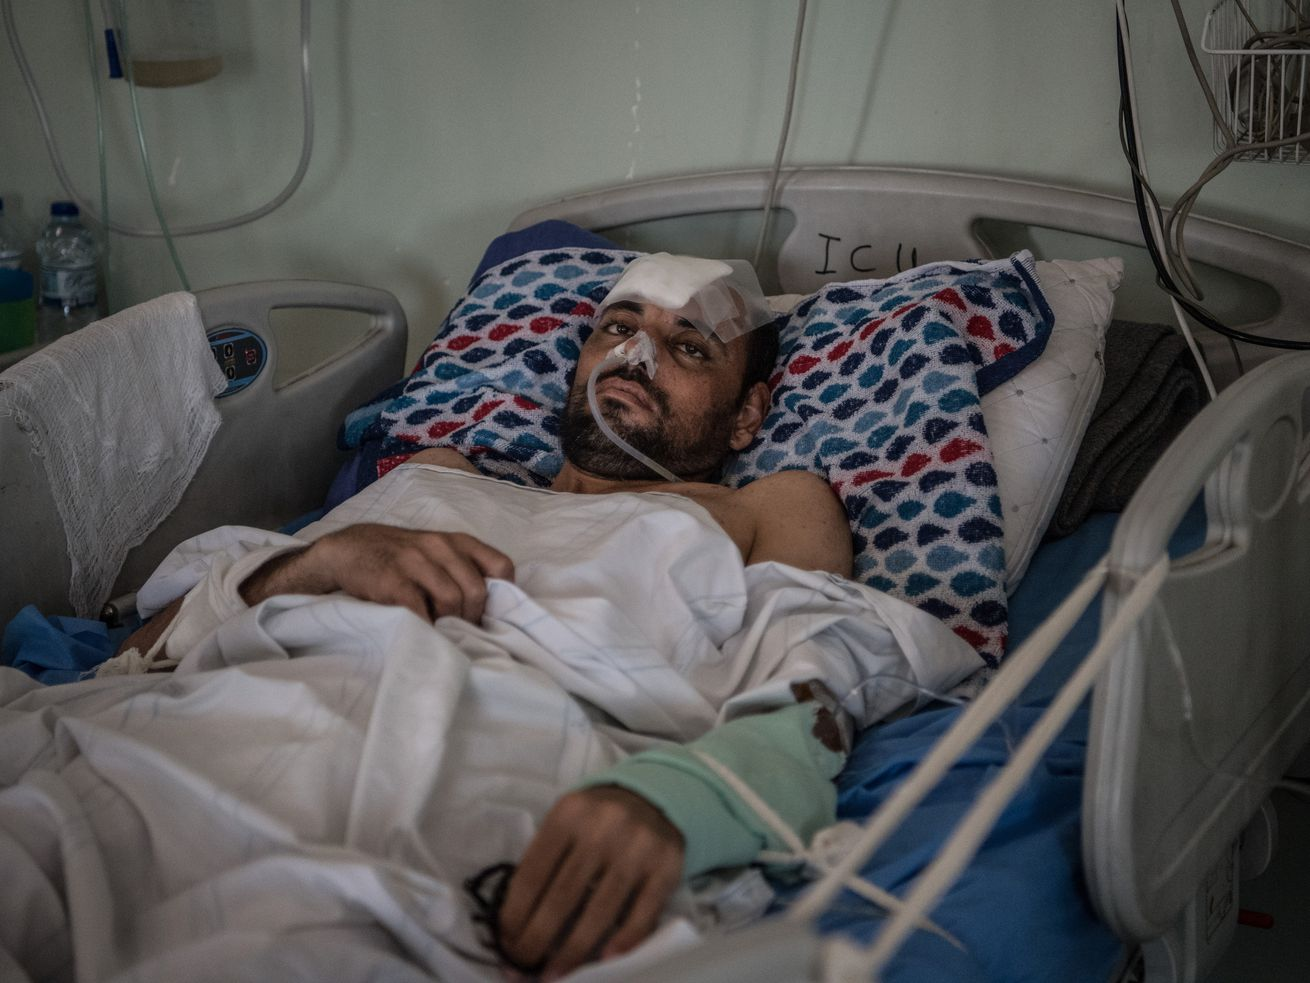 An Iraqi man received serious injuries after an April 2017 airstrike in Mosul.